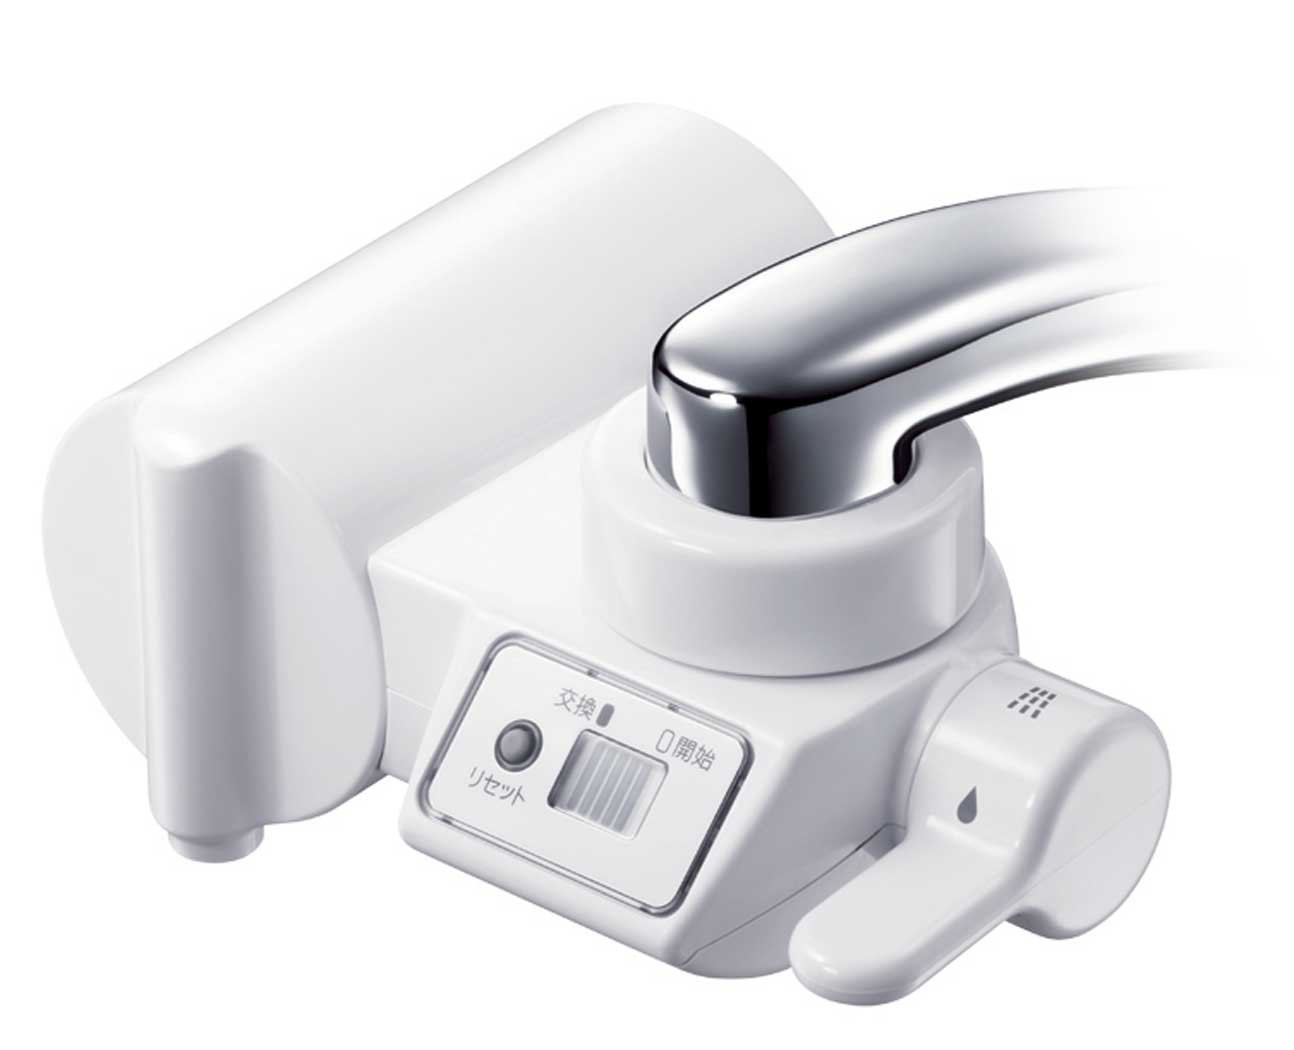 CLEANSUI CB073 CB073-WT-type water purifier faucet CLEANSUI Rayon (Japan Import)